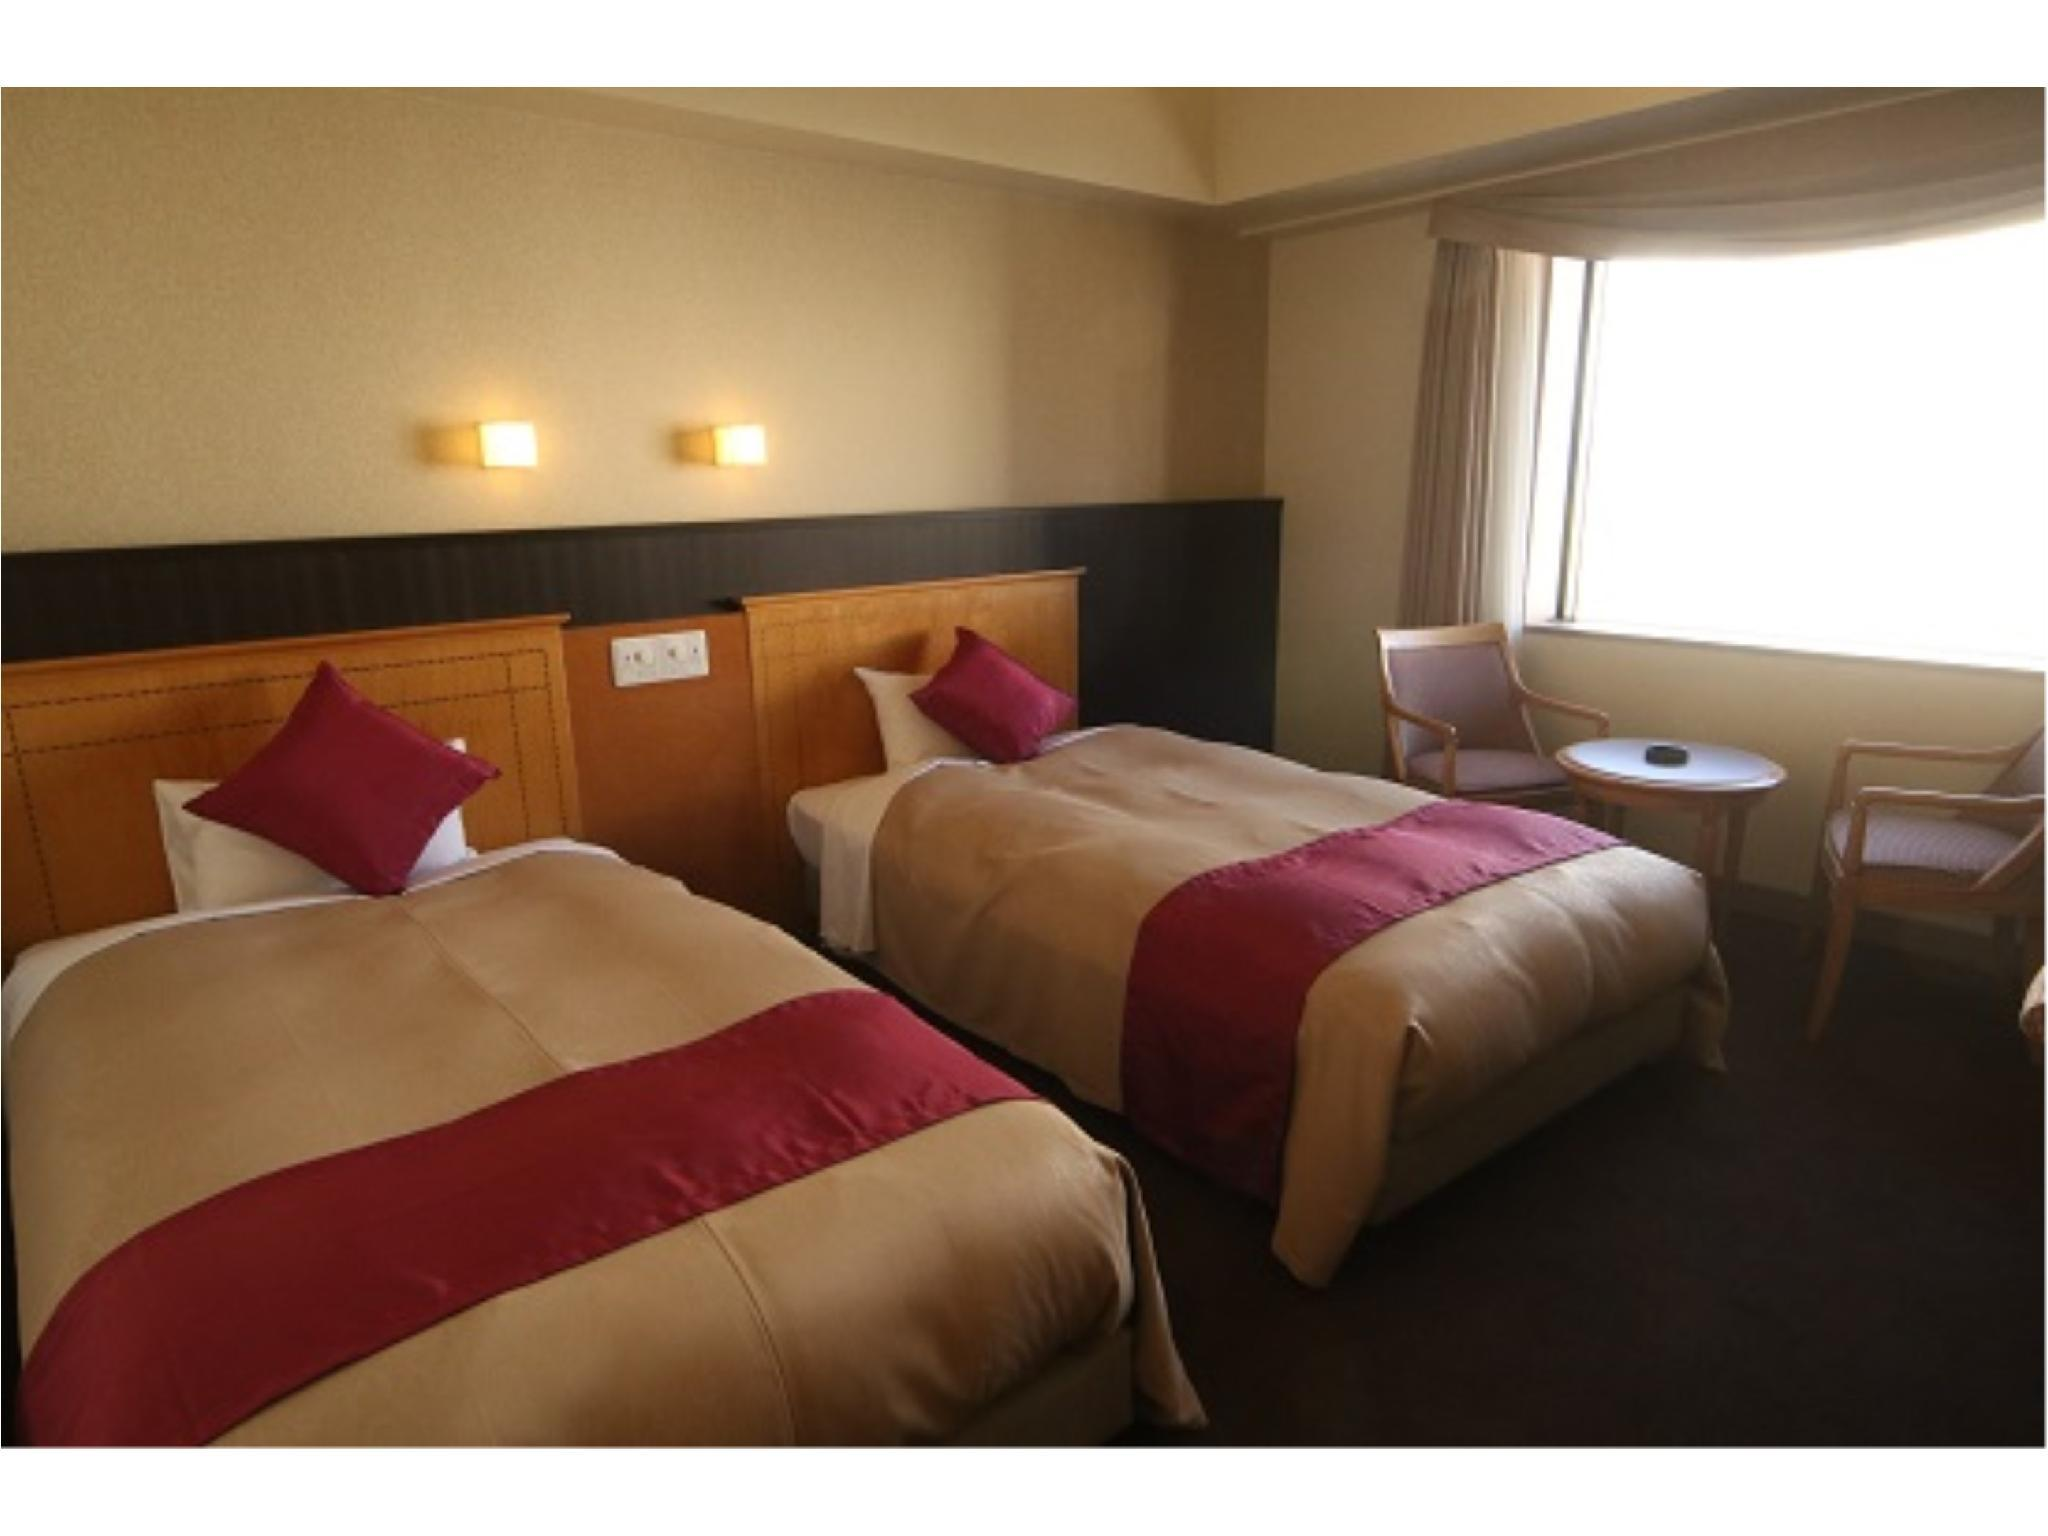 디럭스 트윈룸(본관) (Deluxe Twin Room (Type B, Main Building))